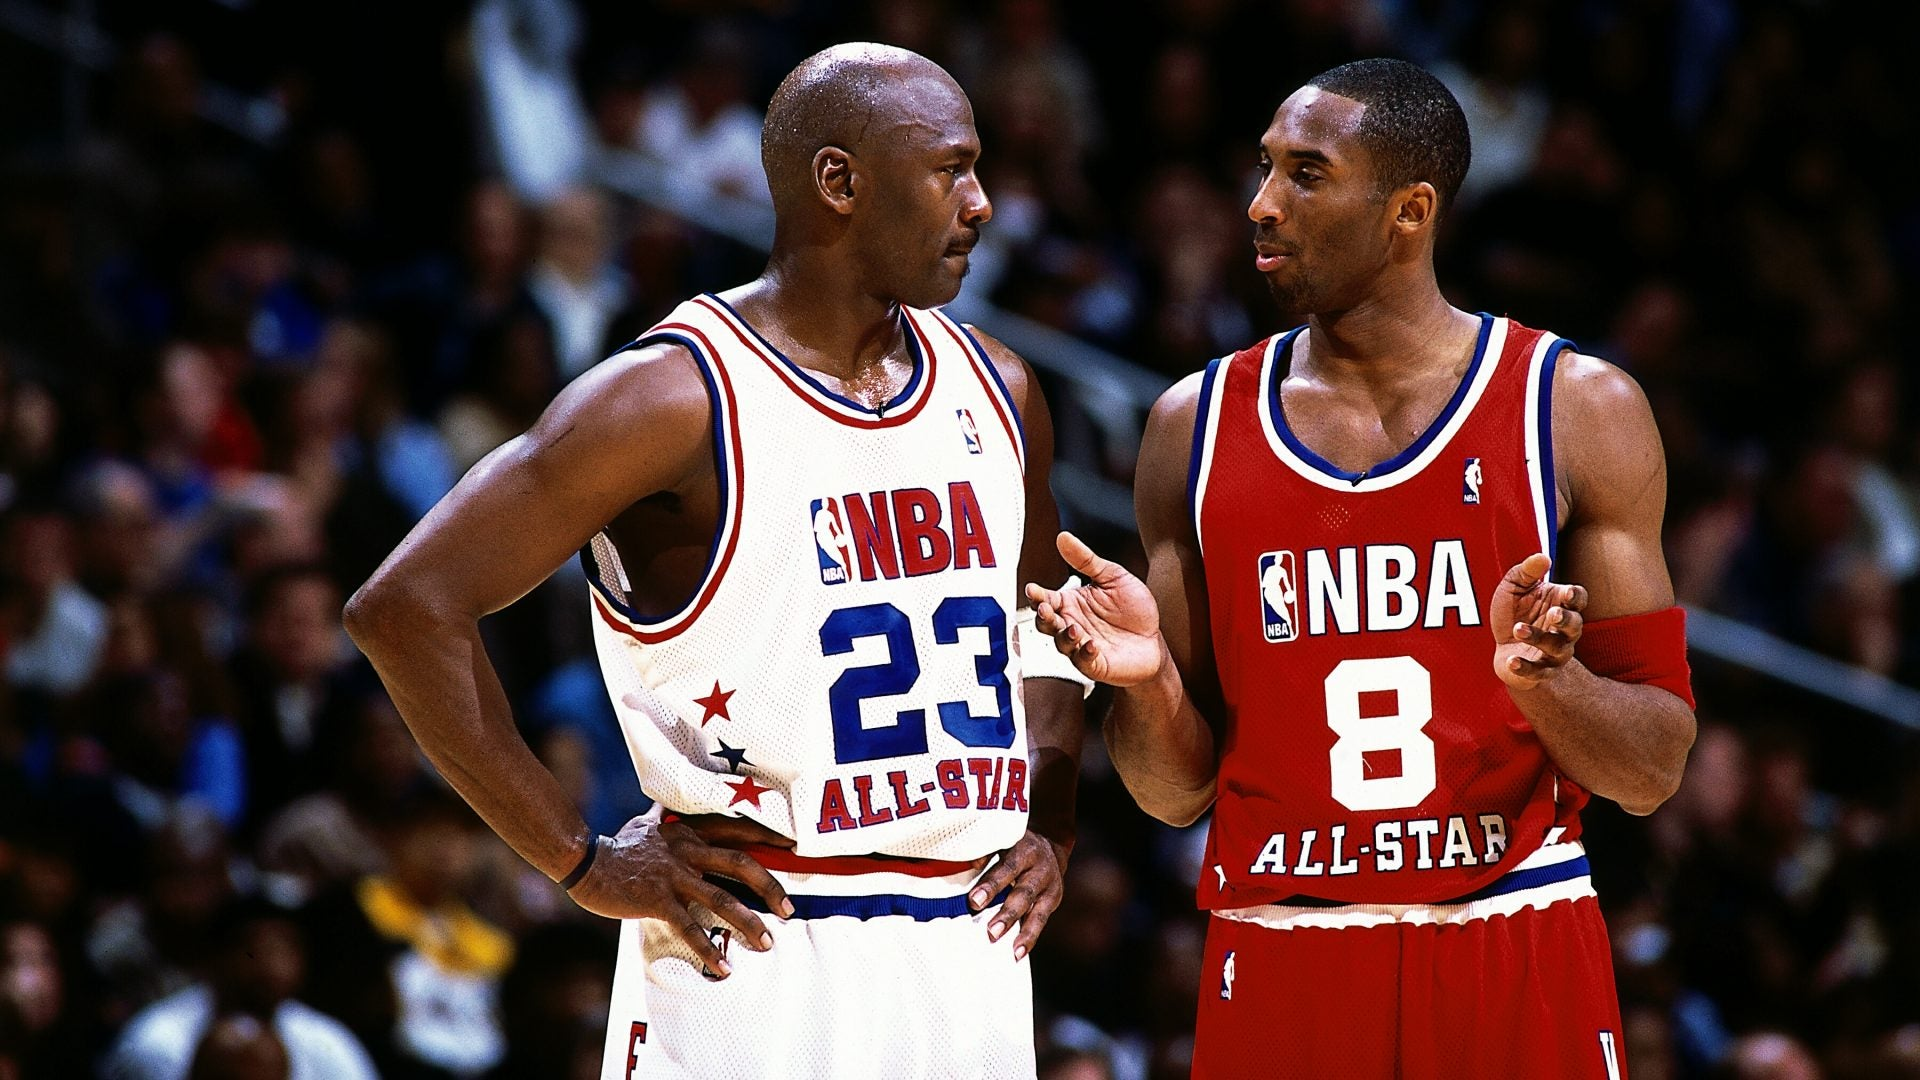 Kobe Bryant Praised Michael Jordan In 'The Last Dance' Before His Death